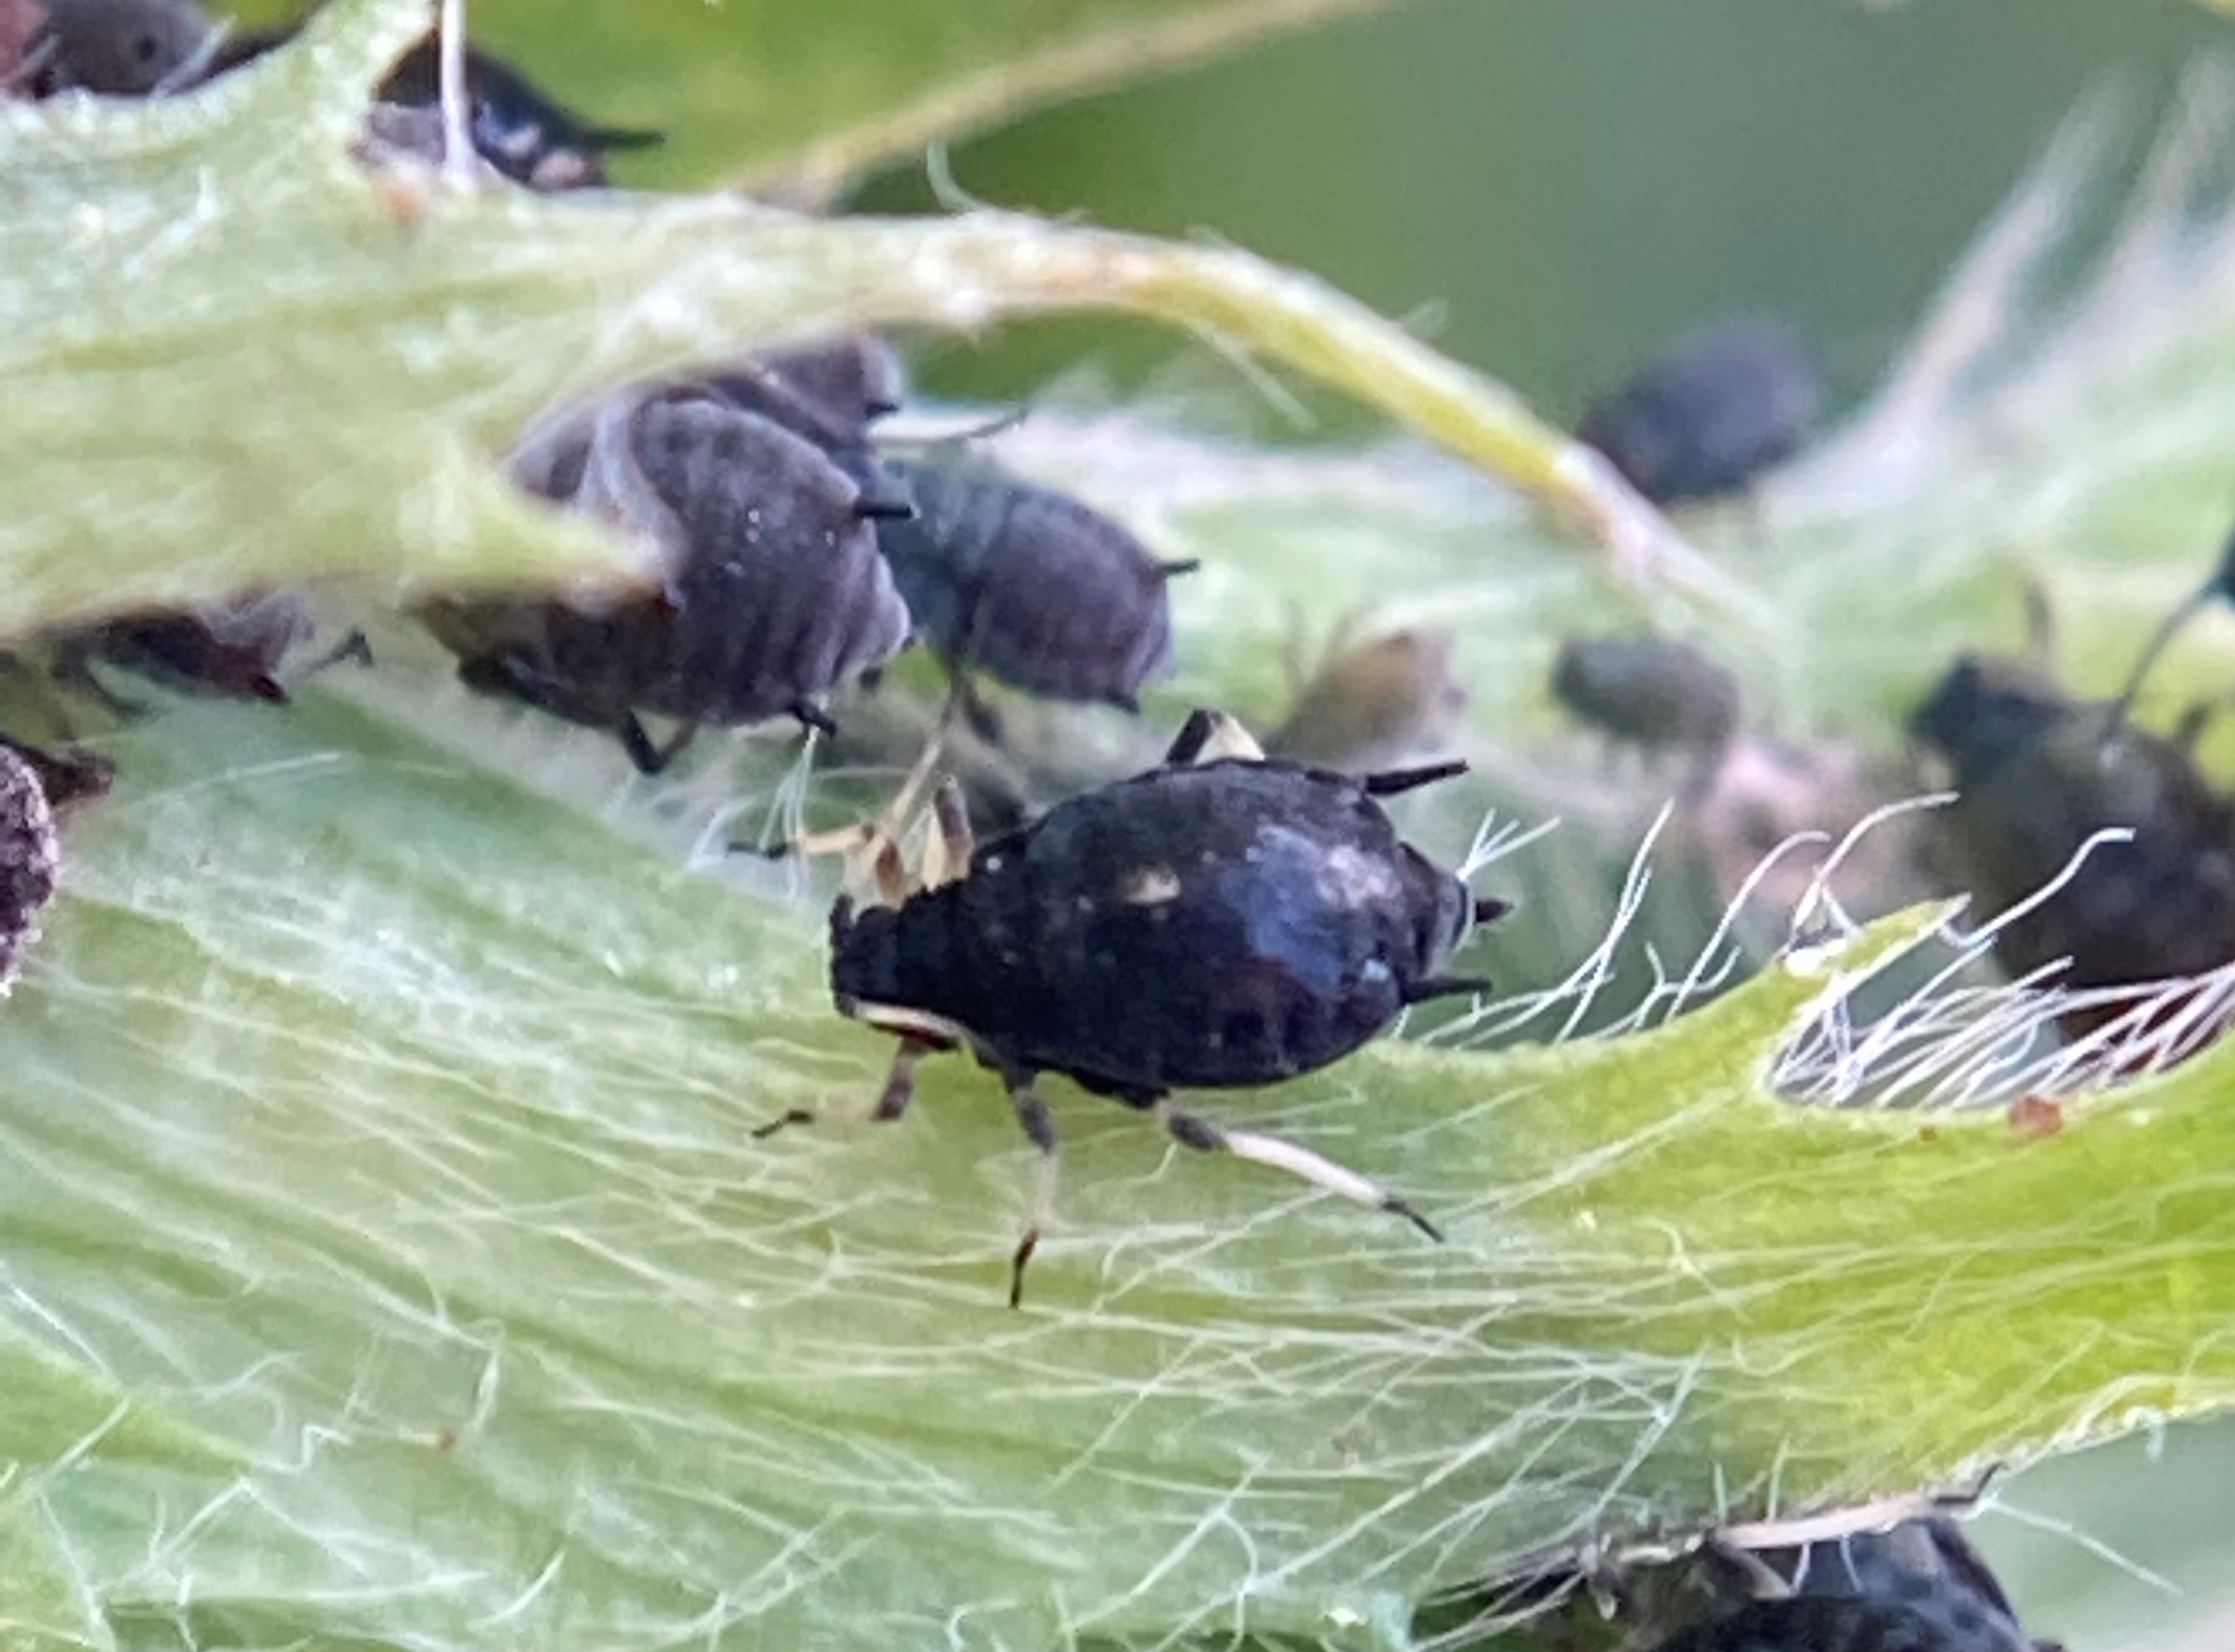 Close up image of Cowpea aphid on a leaf of a lucerne crop